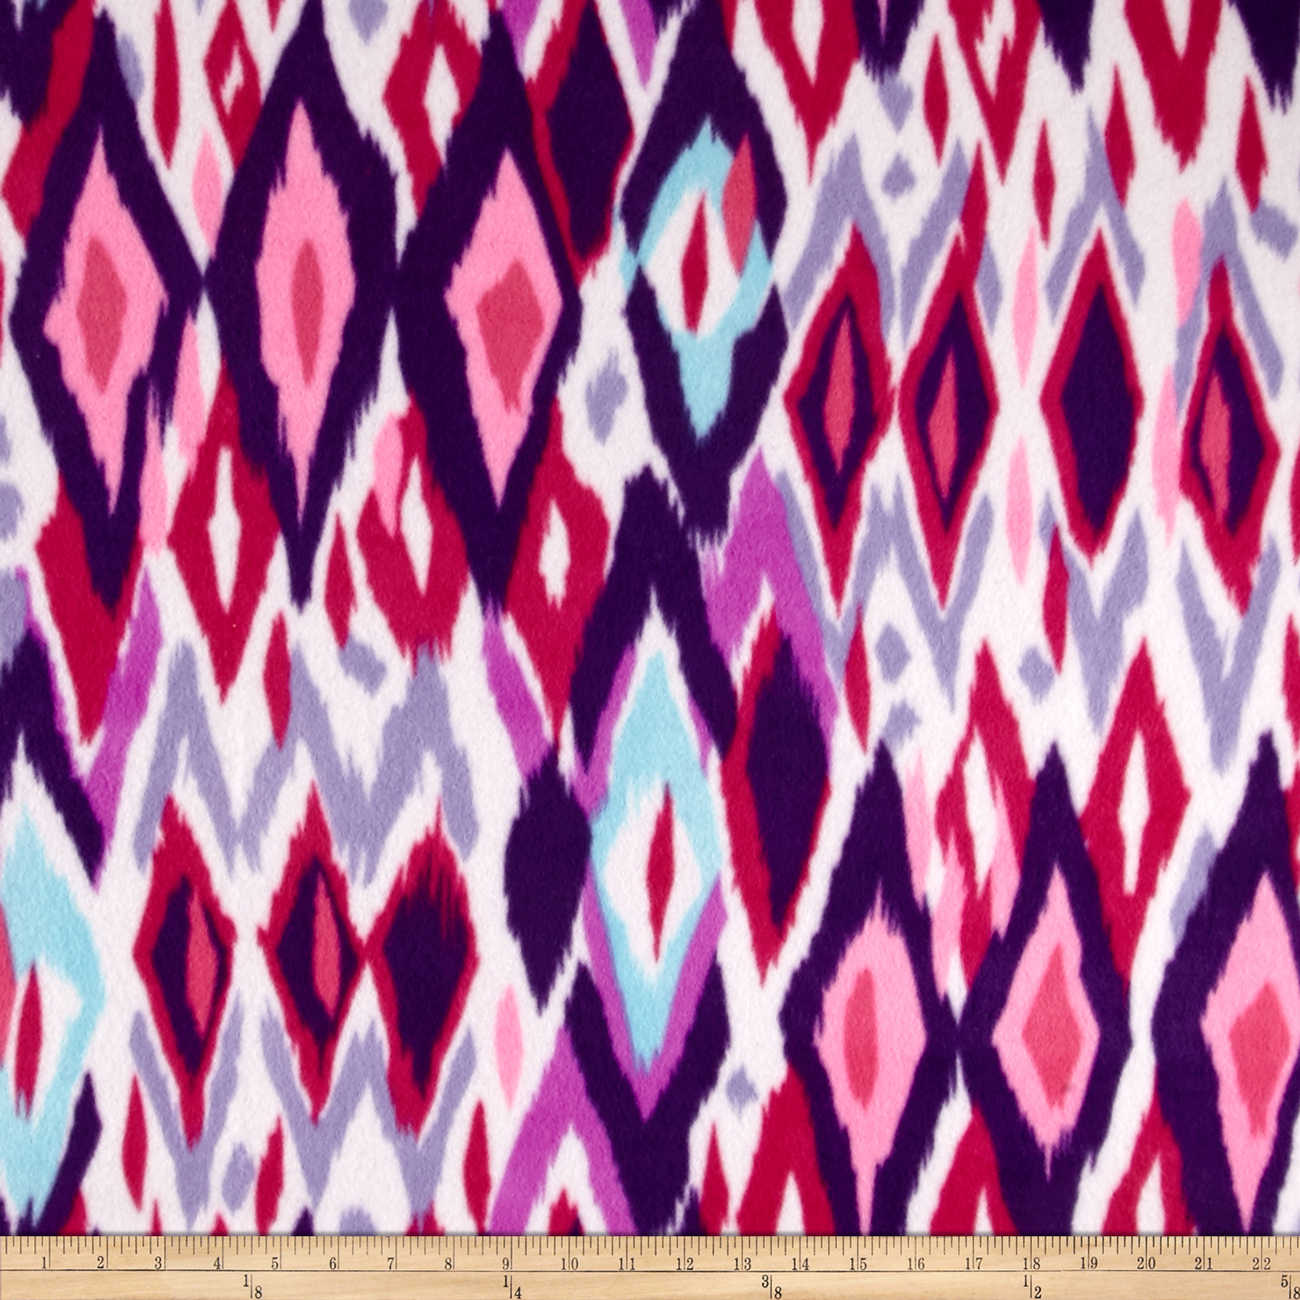 Polar Fleece Print Chipotle Begonia Fabric by Newcastle in USA